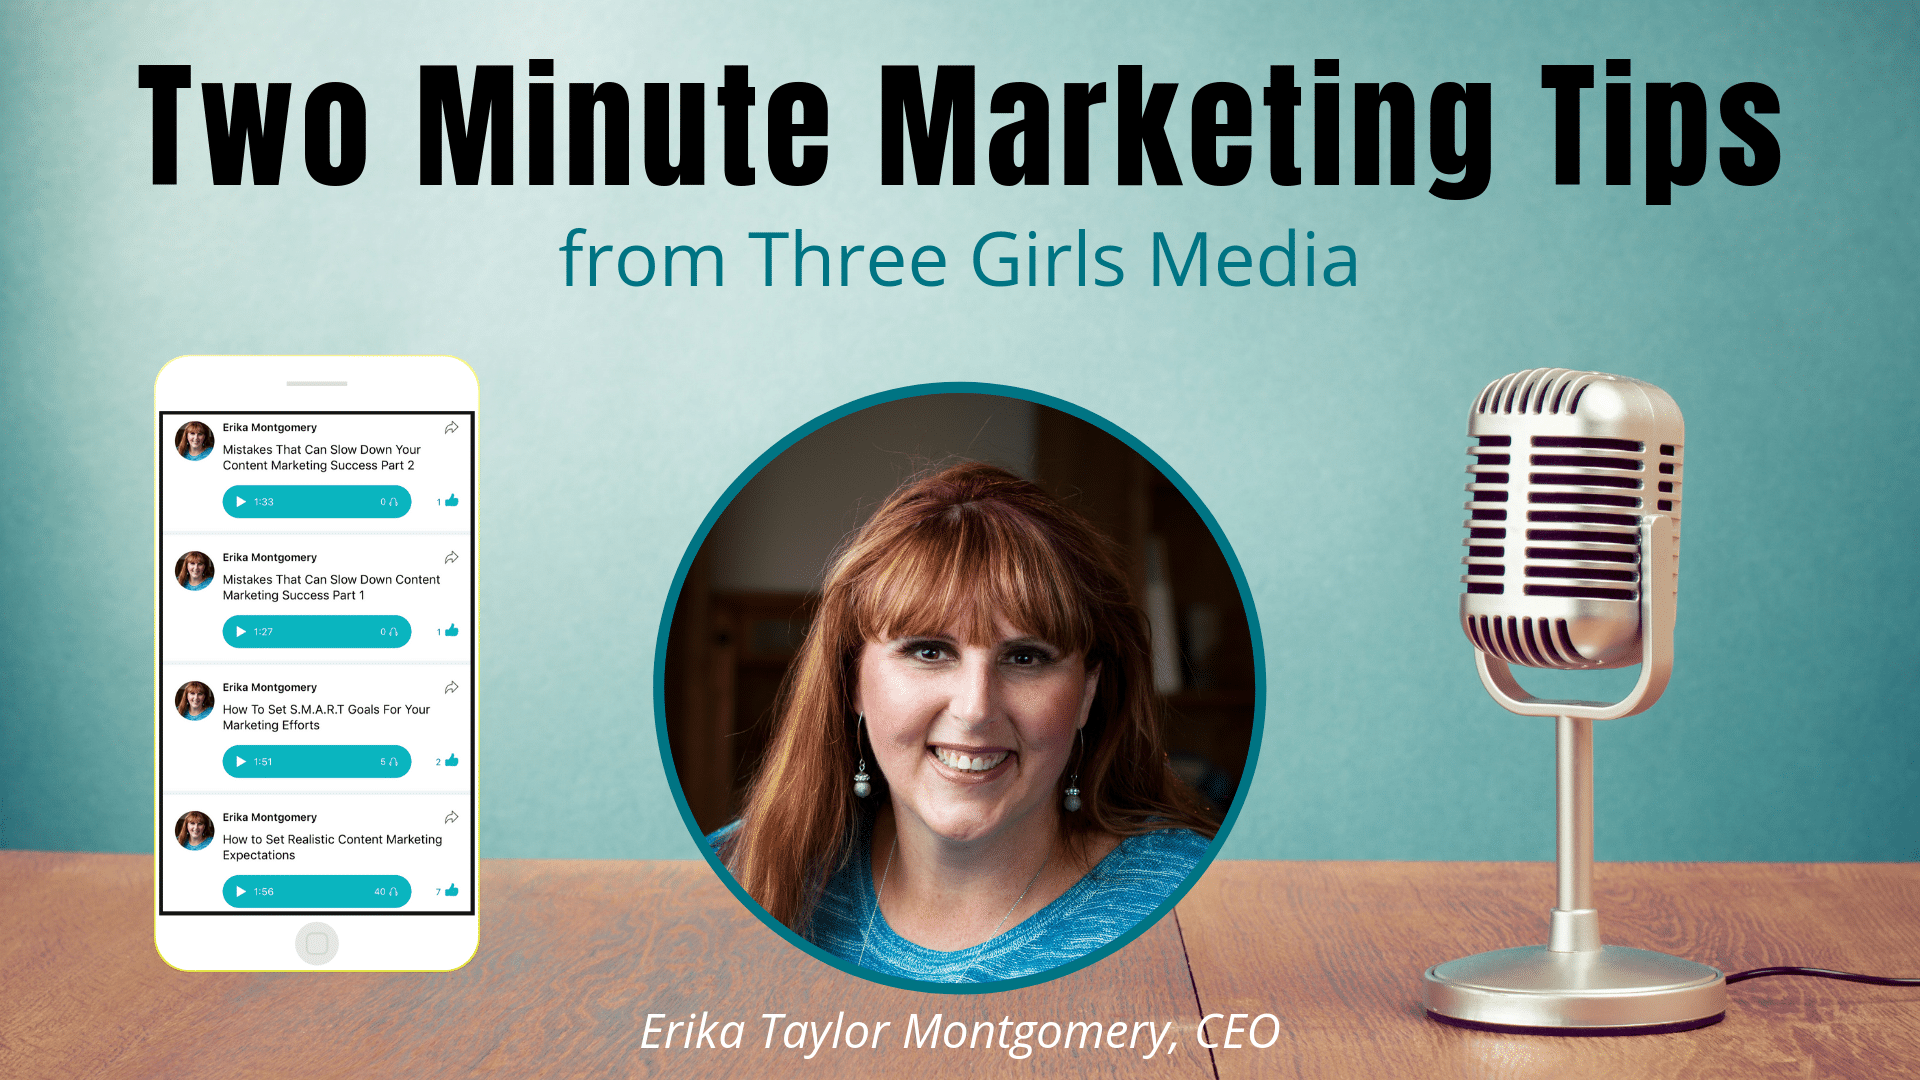 Two Minute Marketing Tips: Boost Your Social Media Visuals